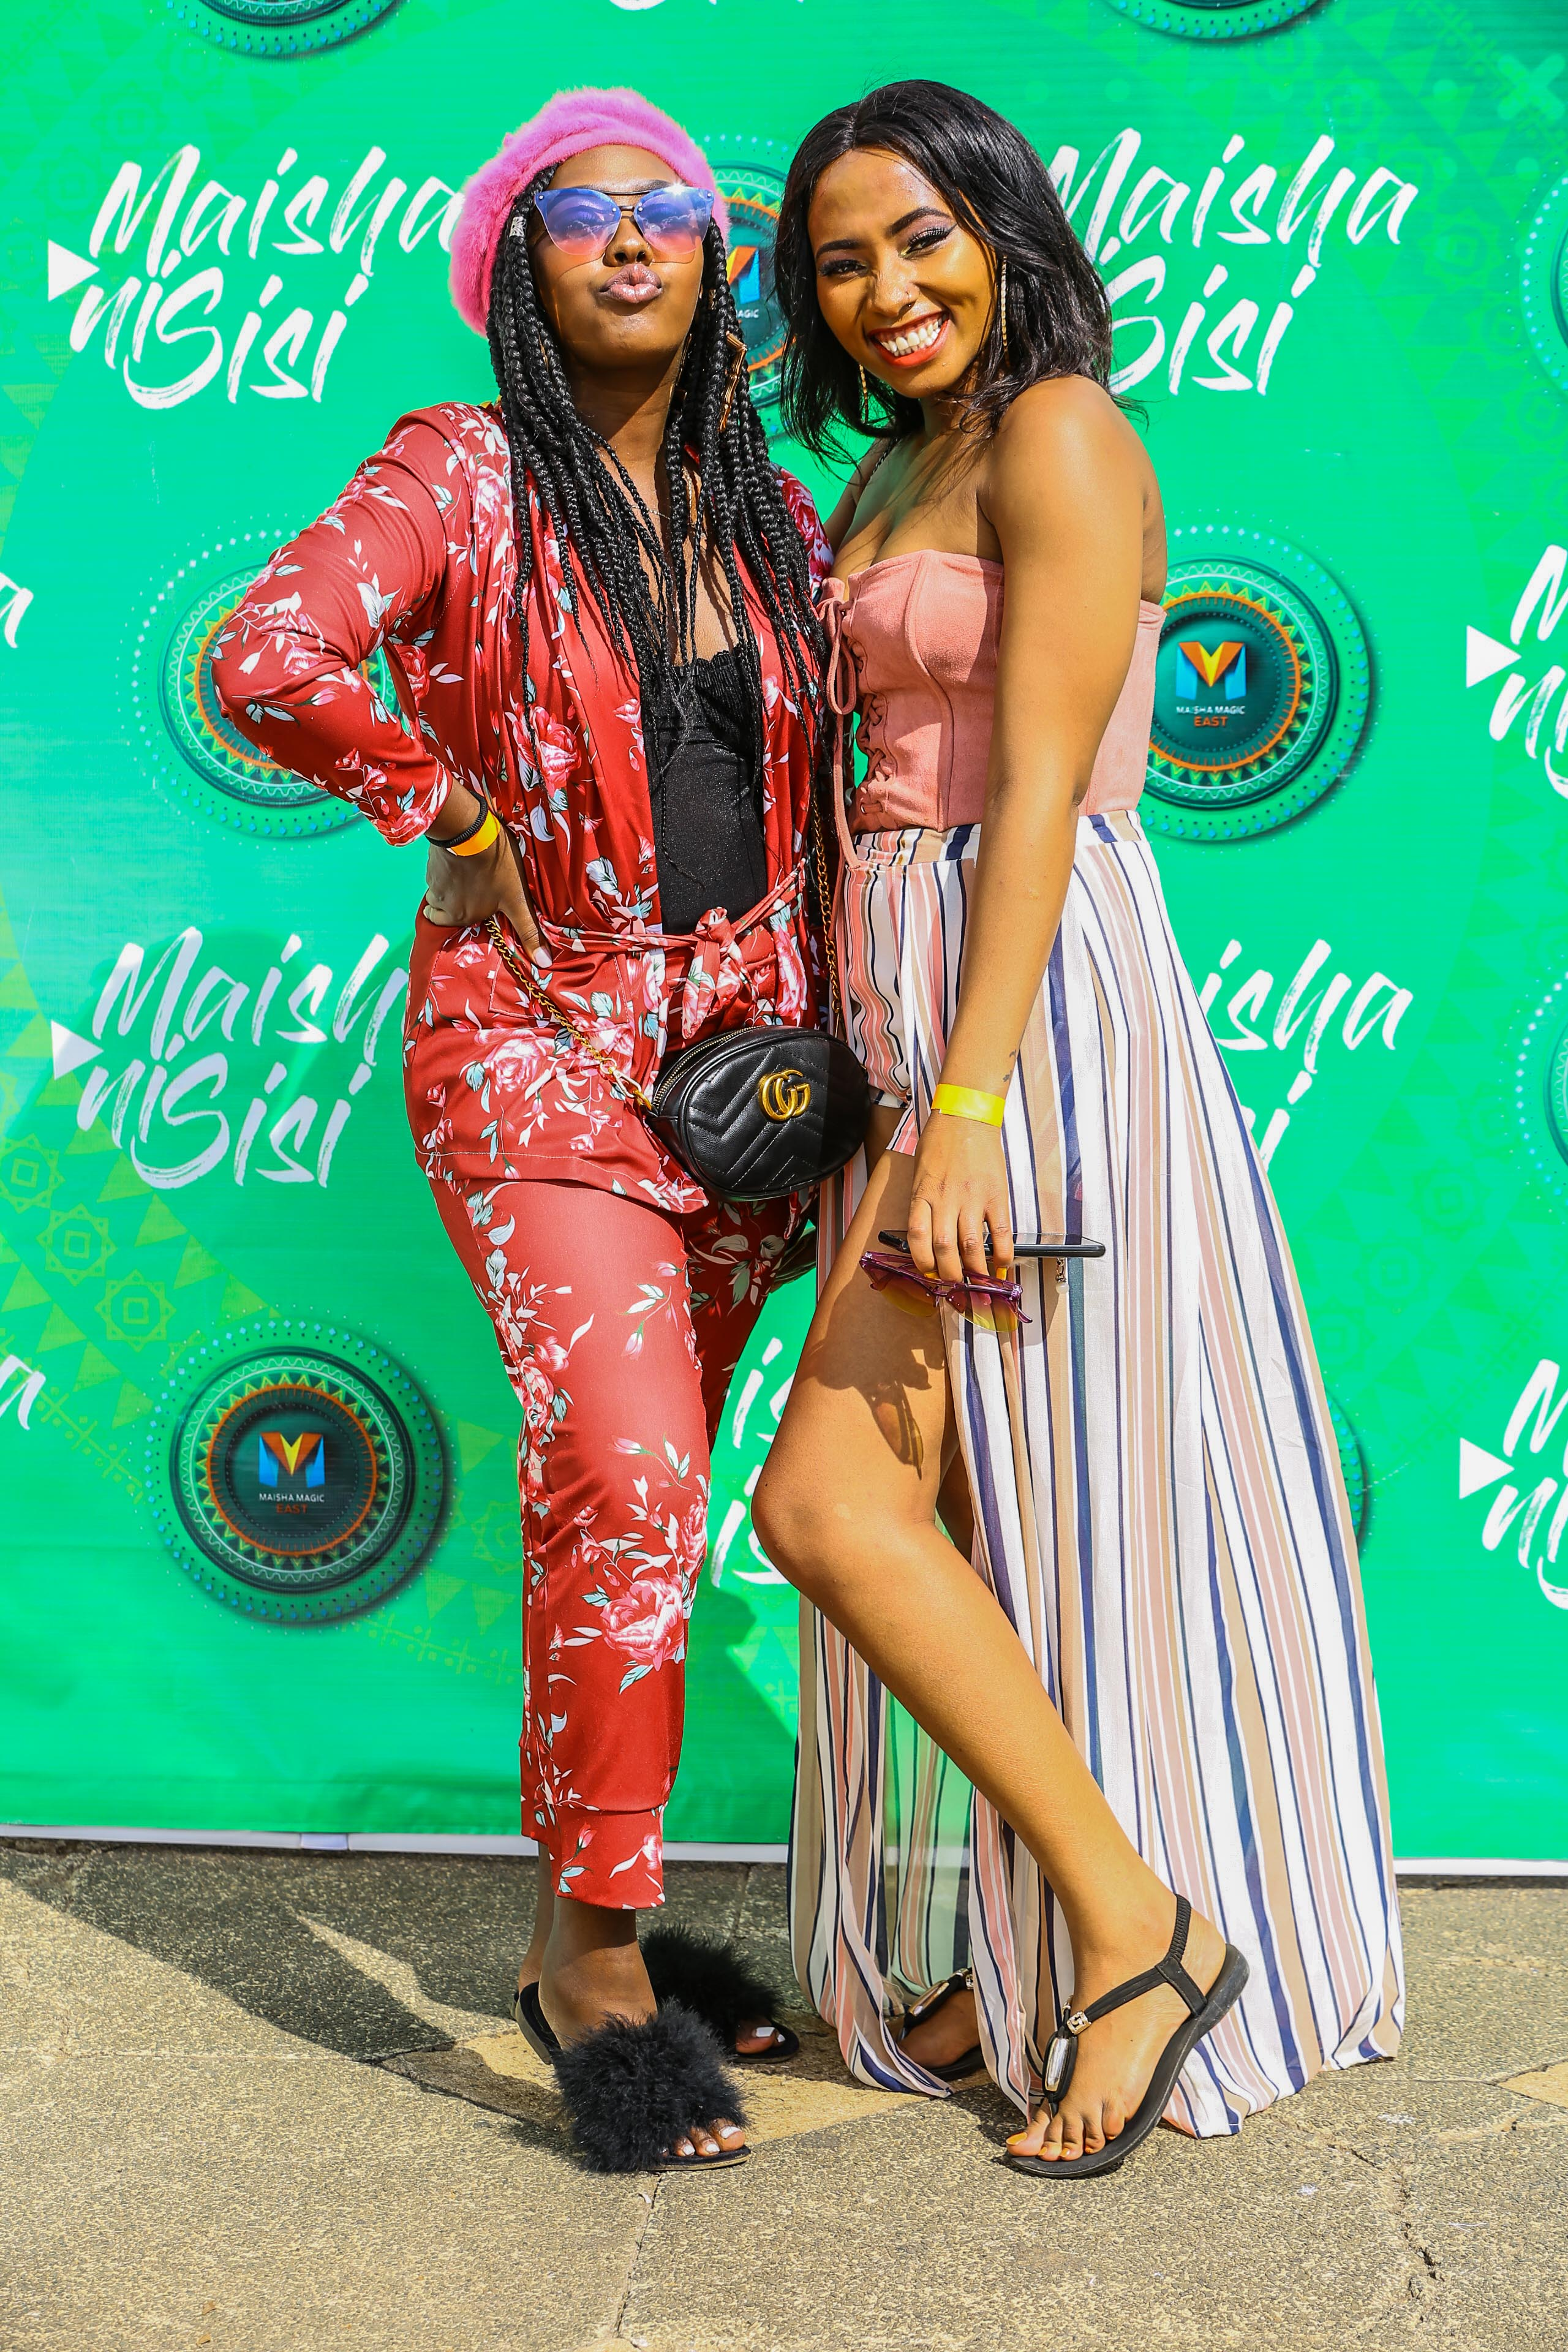 Maisha Magic Festival At KICC (4th May, 2019)